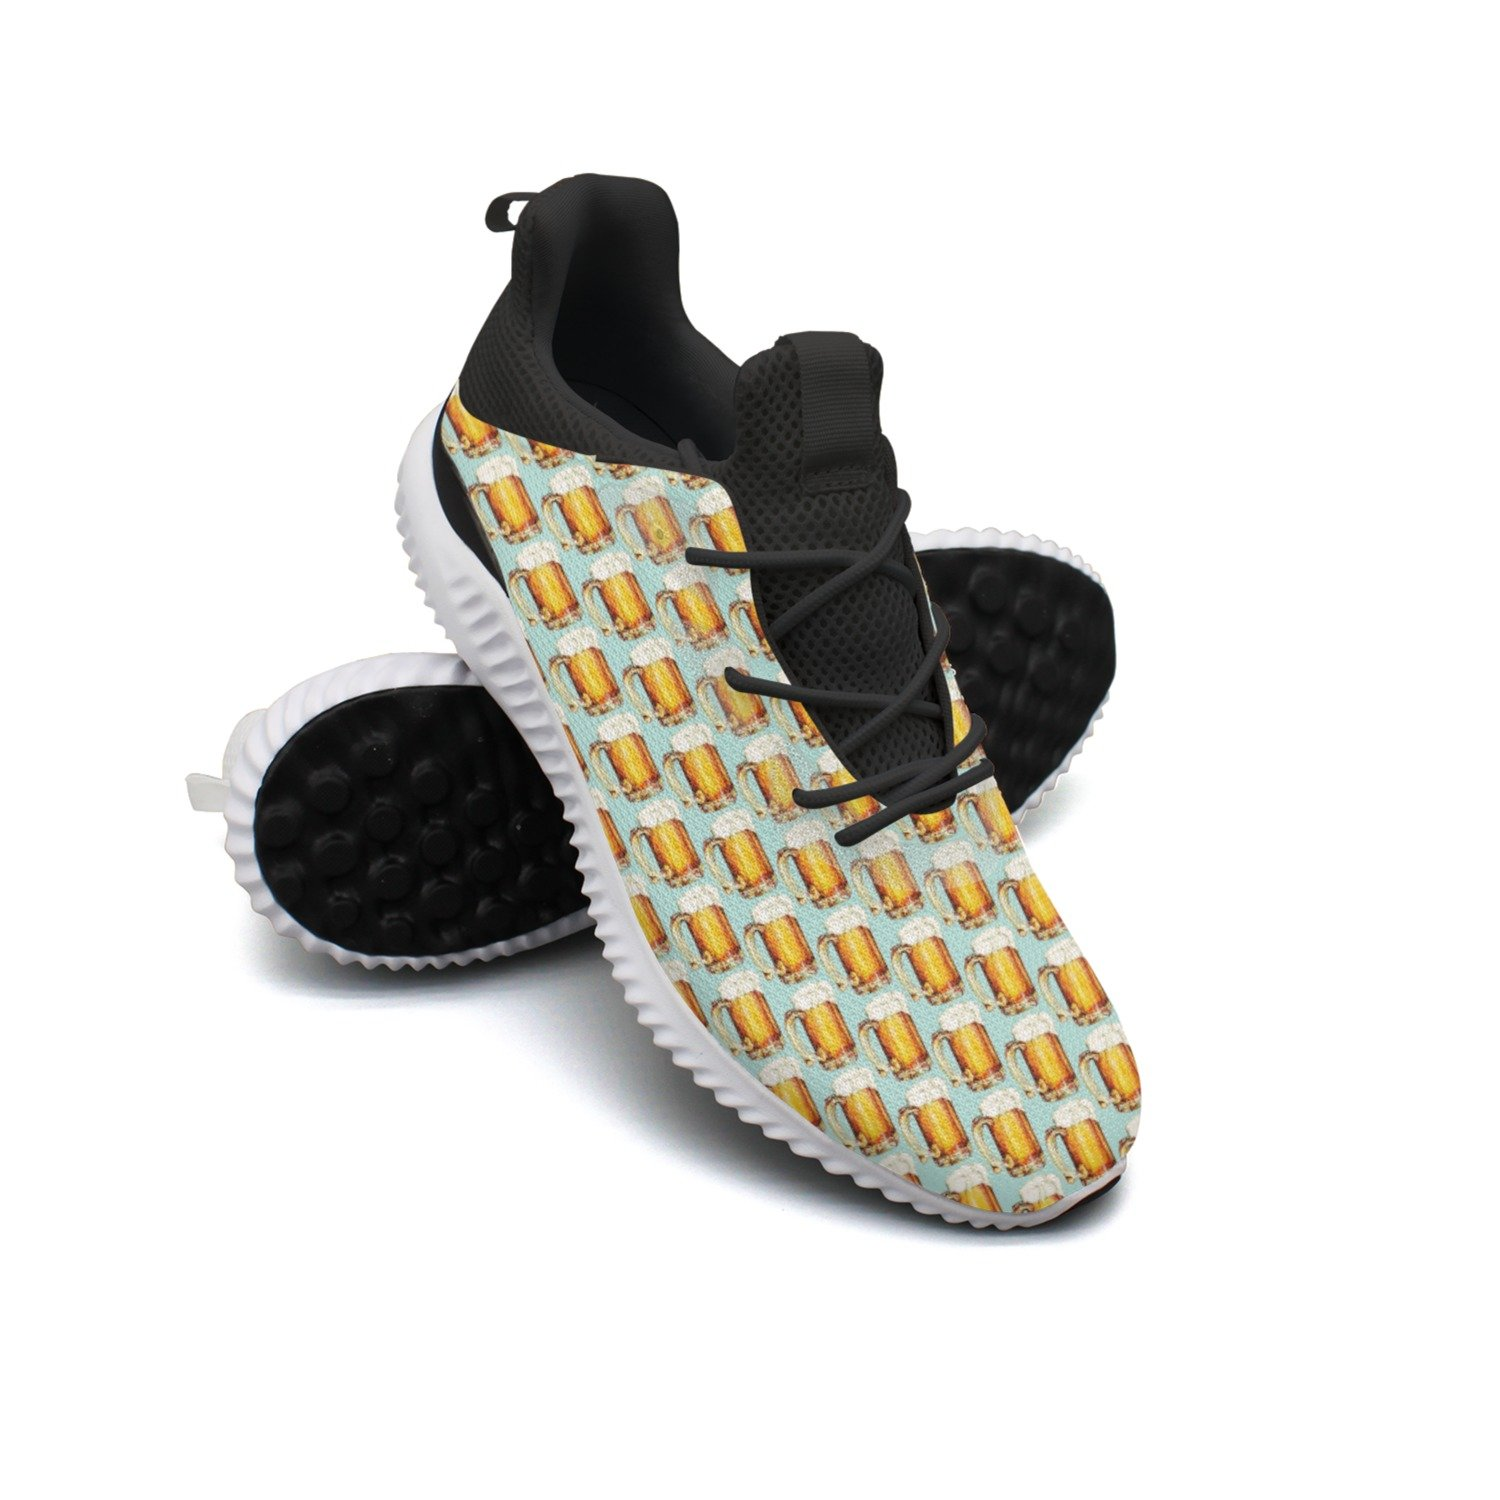 Beer Glasses Leisure Design Running Shoes Woman's Neutral Climbing Gift